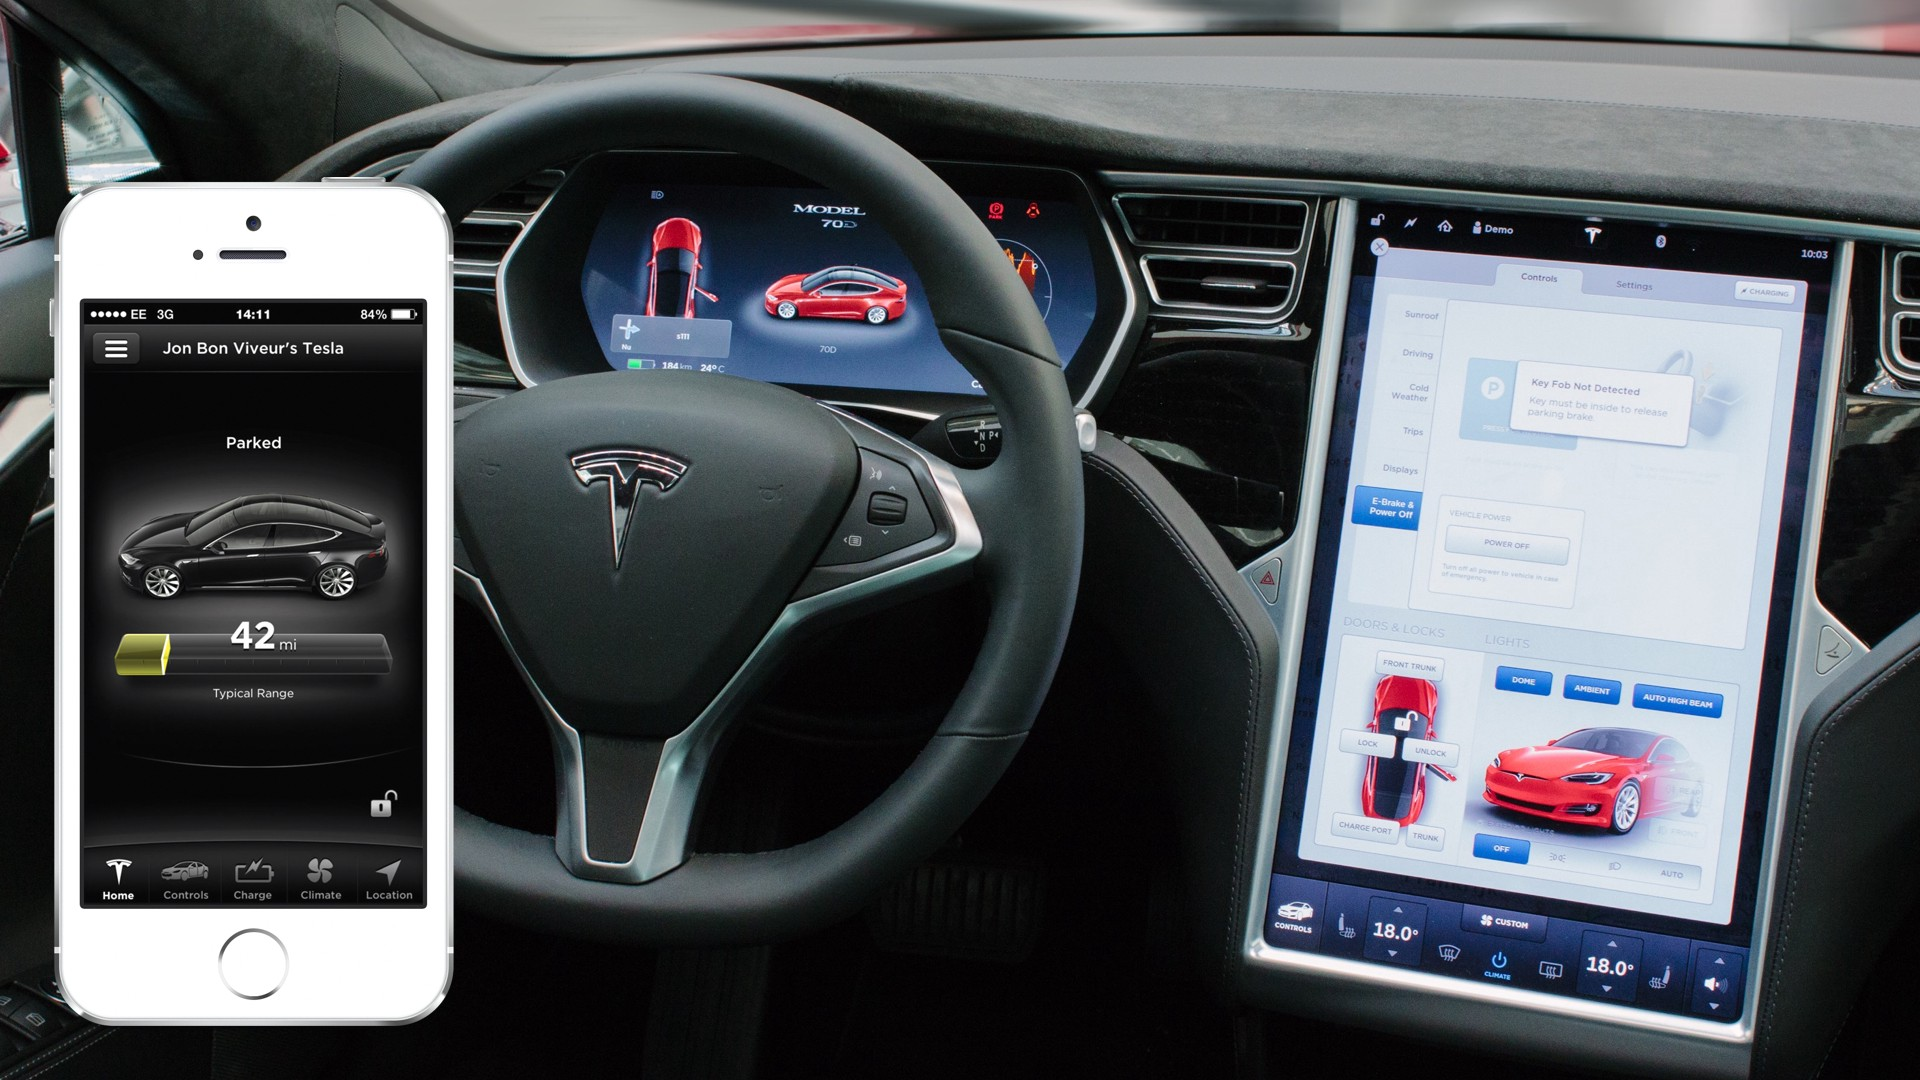 What We Learned Designing A Car User Experience Ui Medium La Detailed Auto Topics Tips On Automotive Electrical Testing The Mobile App Steering Wheel Controlling Instrument Cluster And Button For Voice Commands Main Computer Unit Right